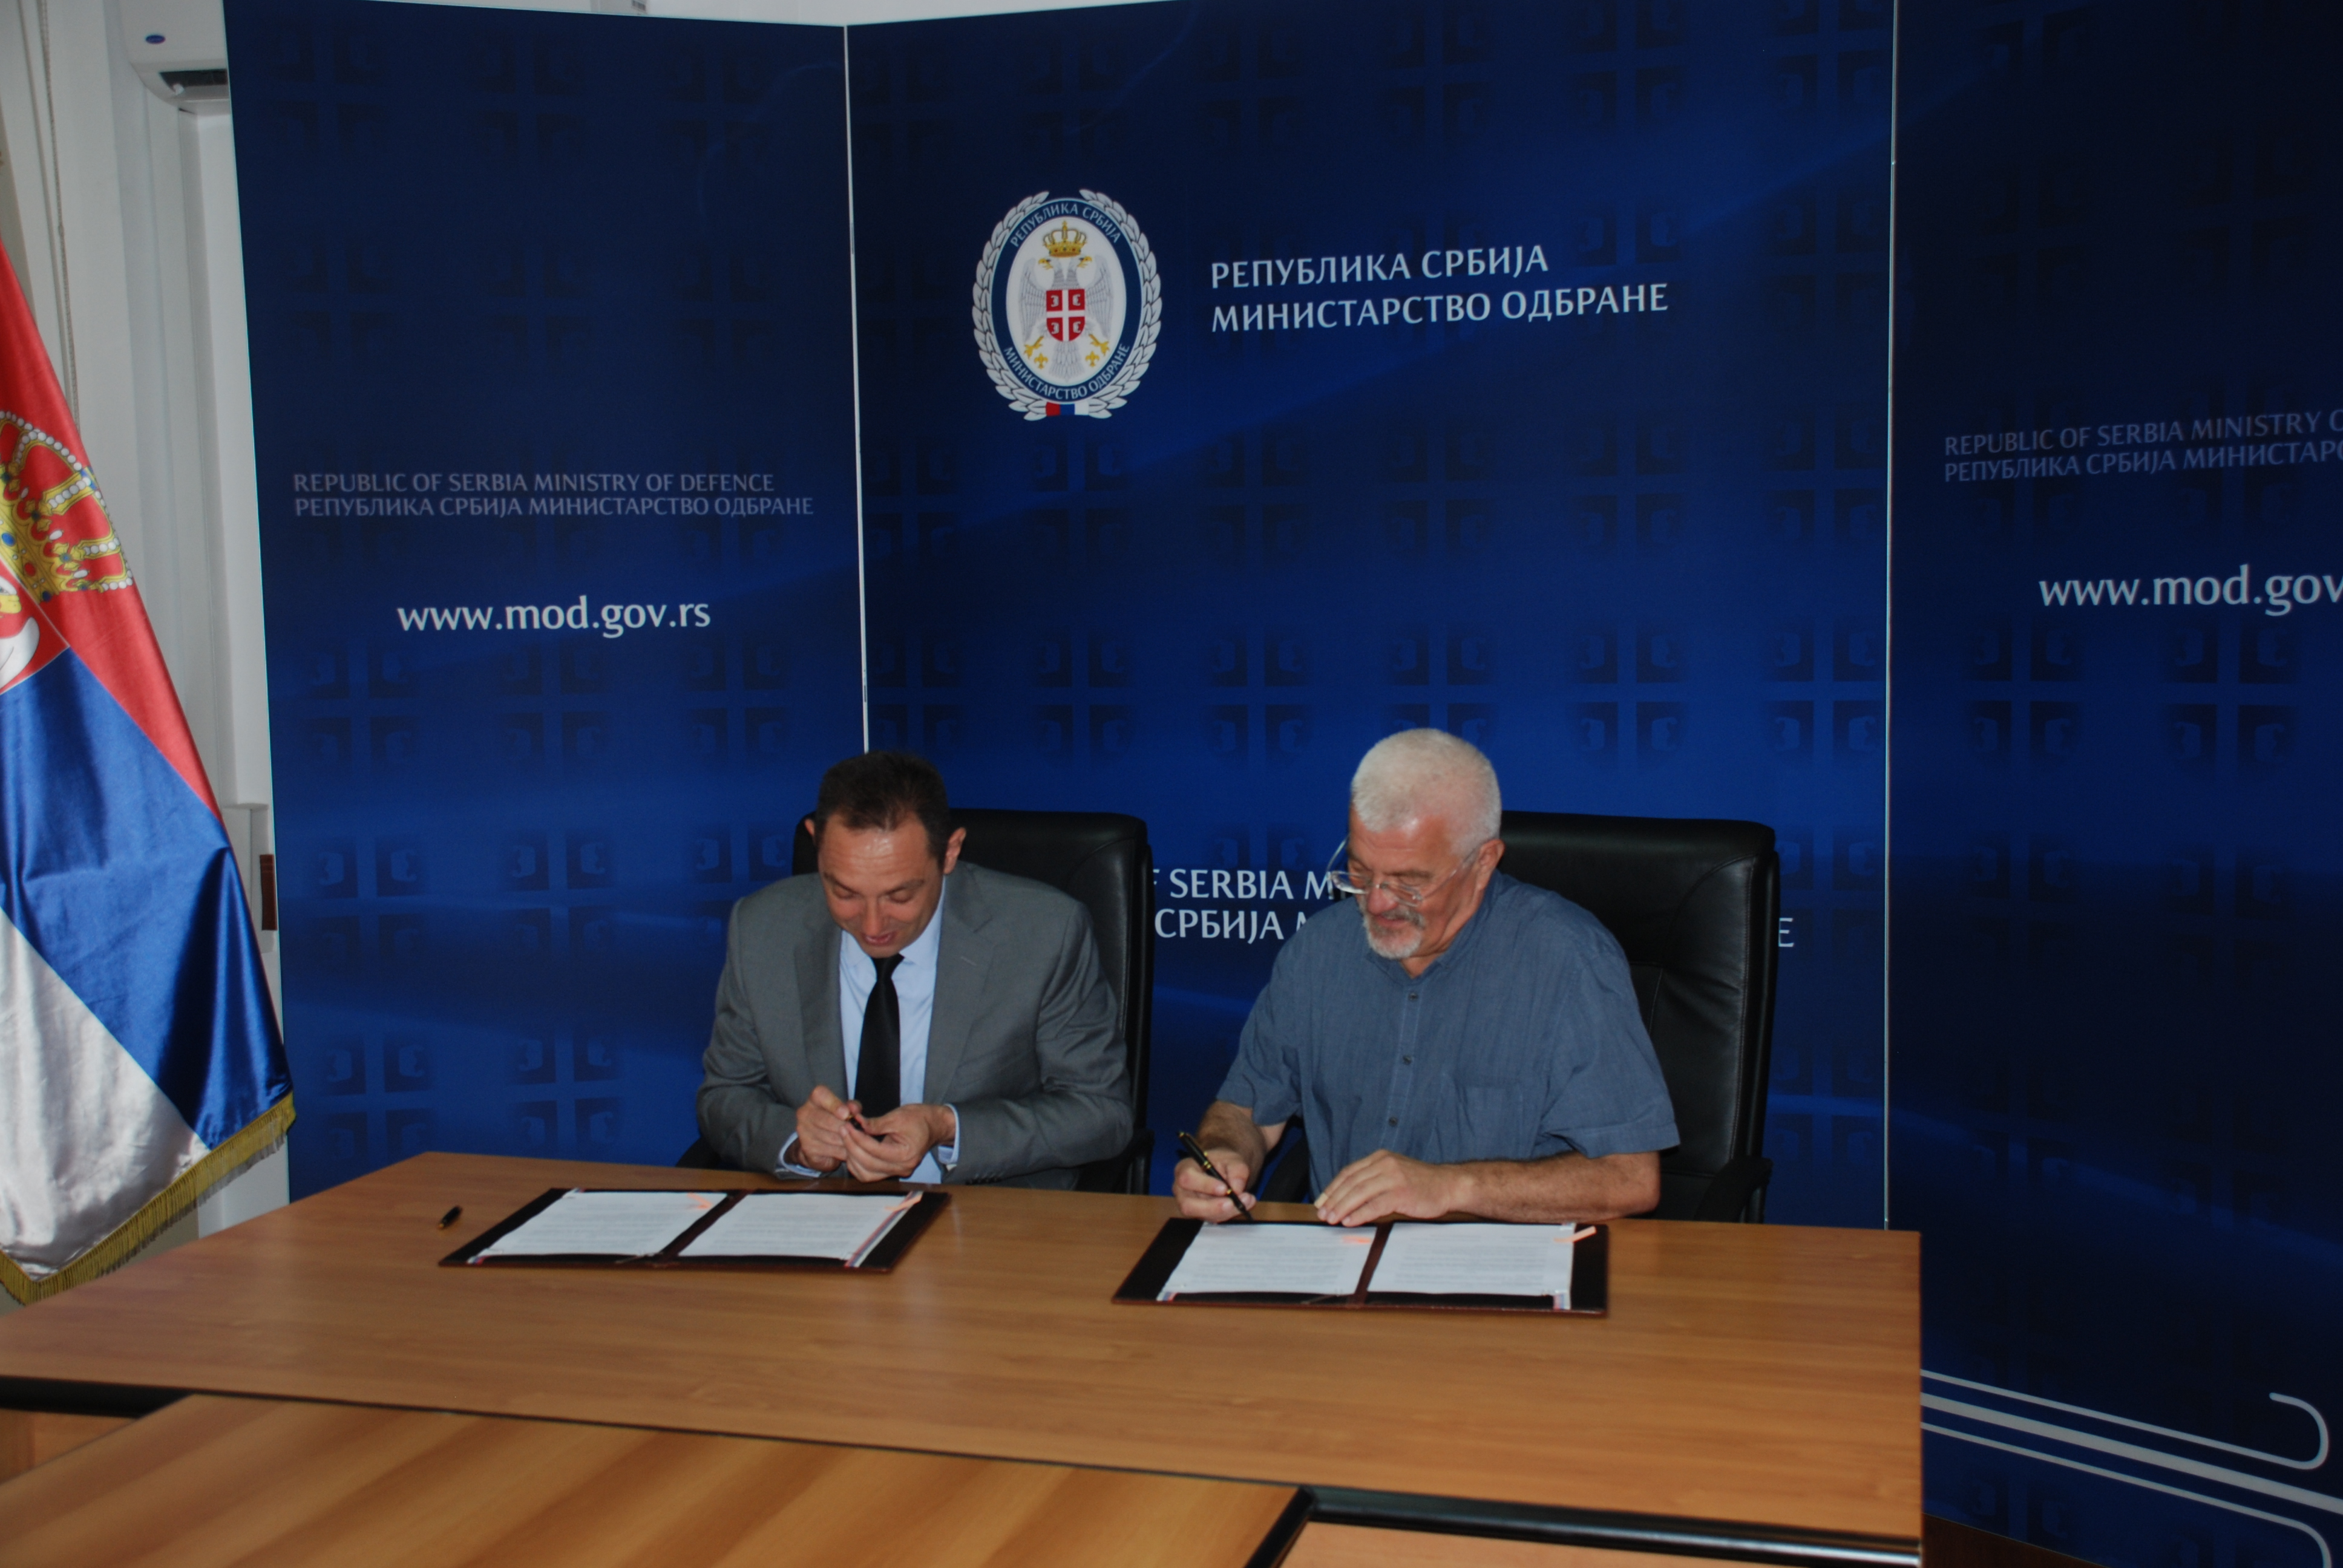 Cooperation between the Commissariat for Refugees and Migration and the Ministry of Defense